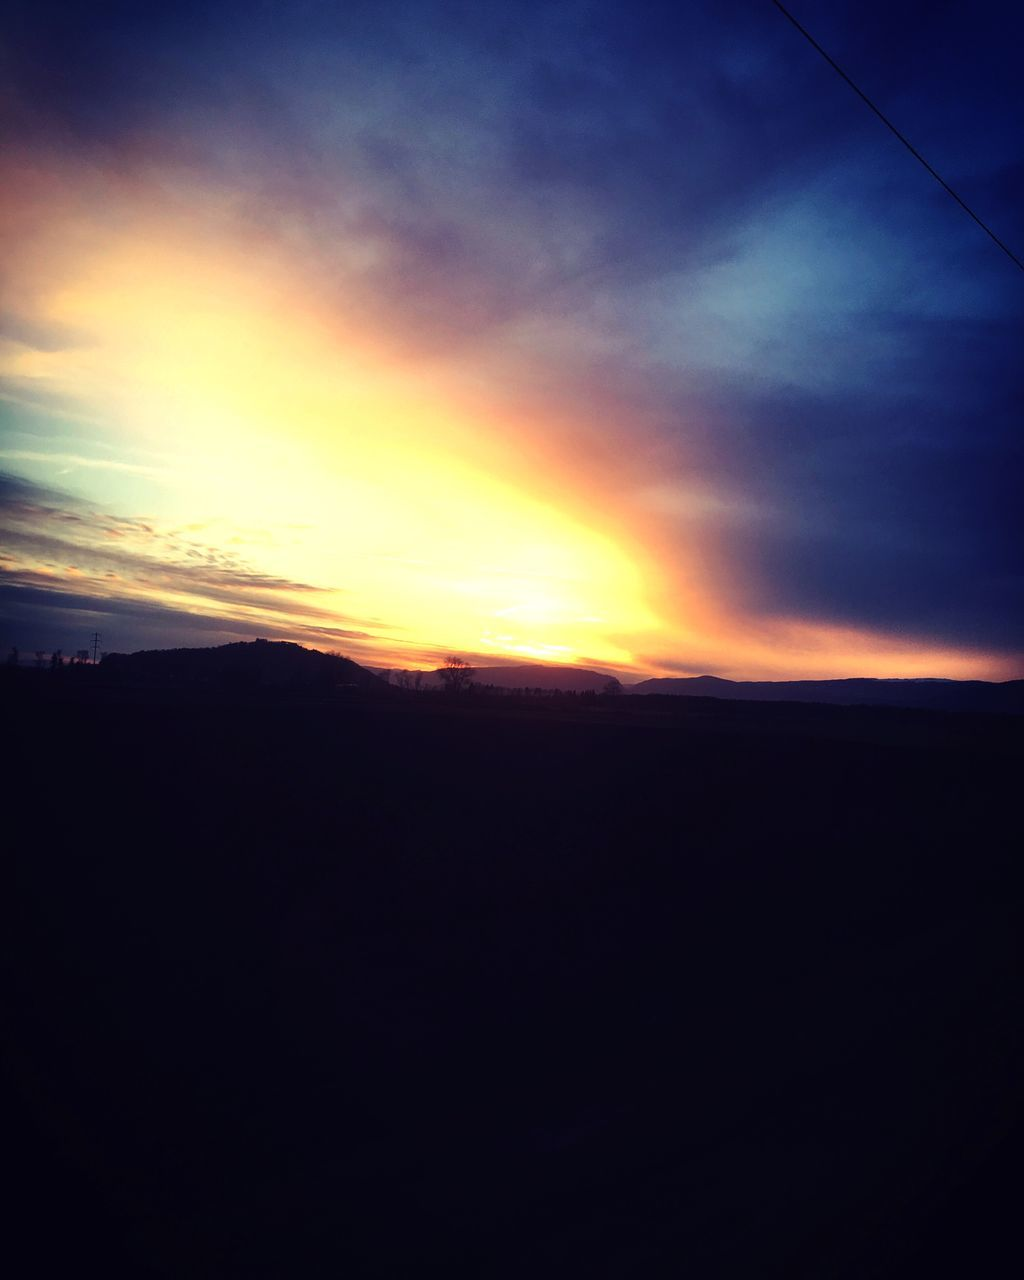 sunset, nature, silhouette, dark, beauty in nature, no people, sky